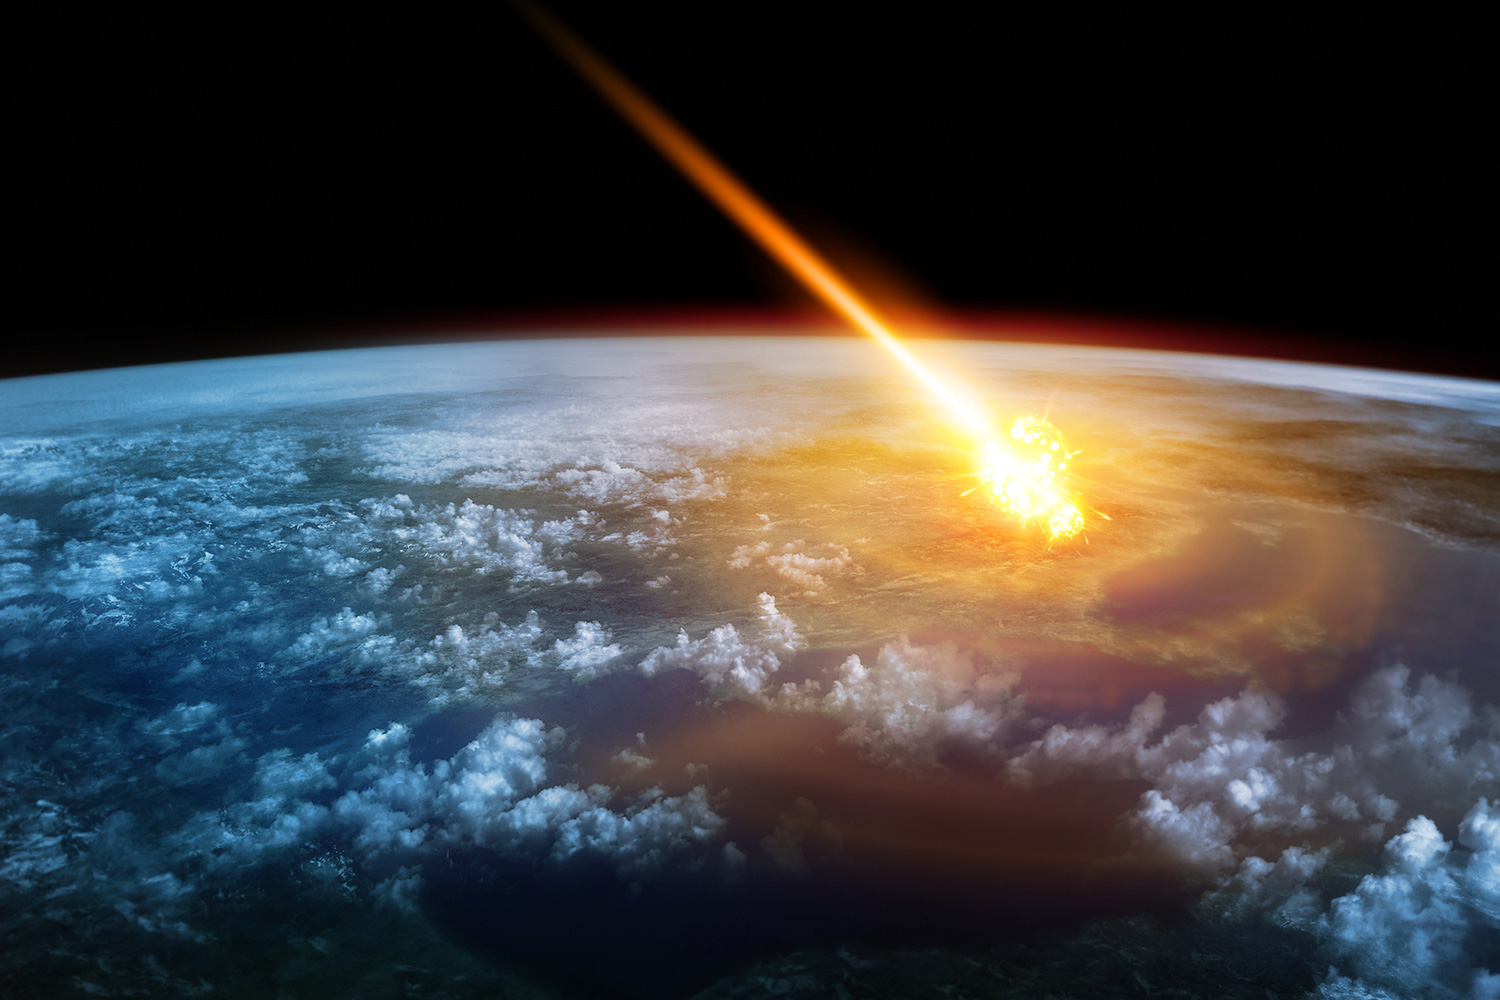 recent asteroid meteor hitting earth - photo #27